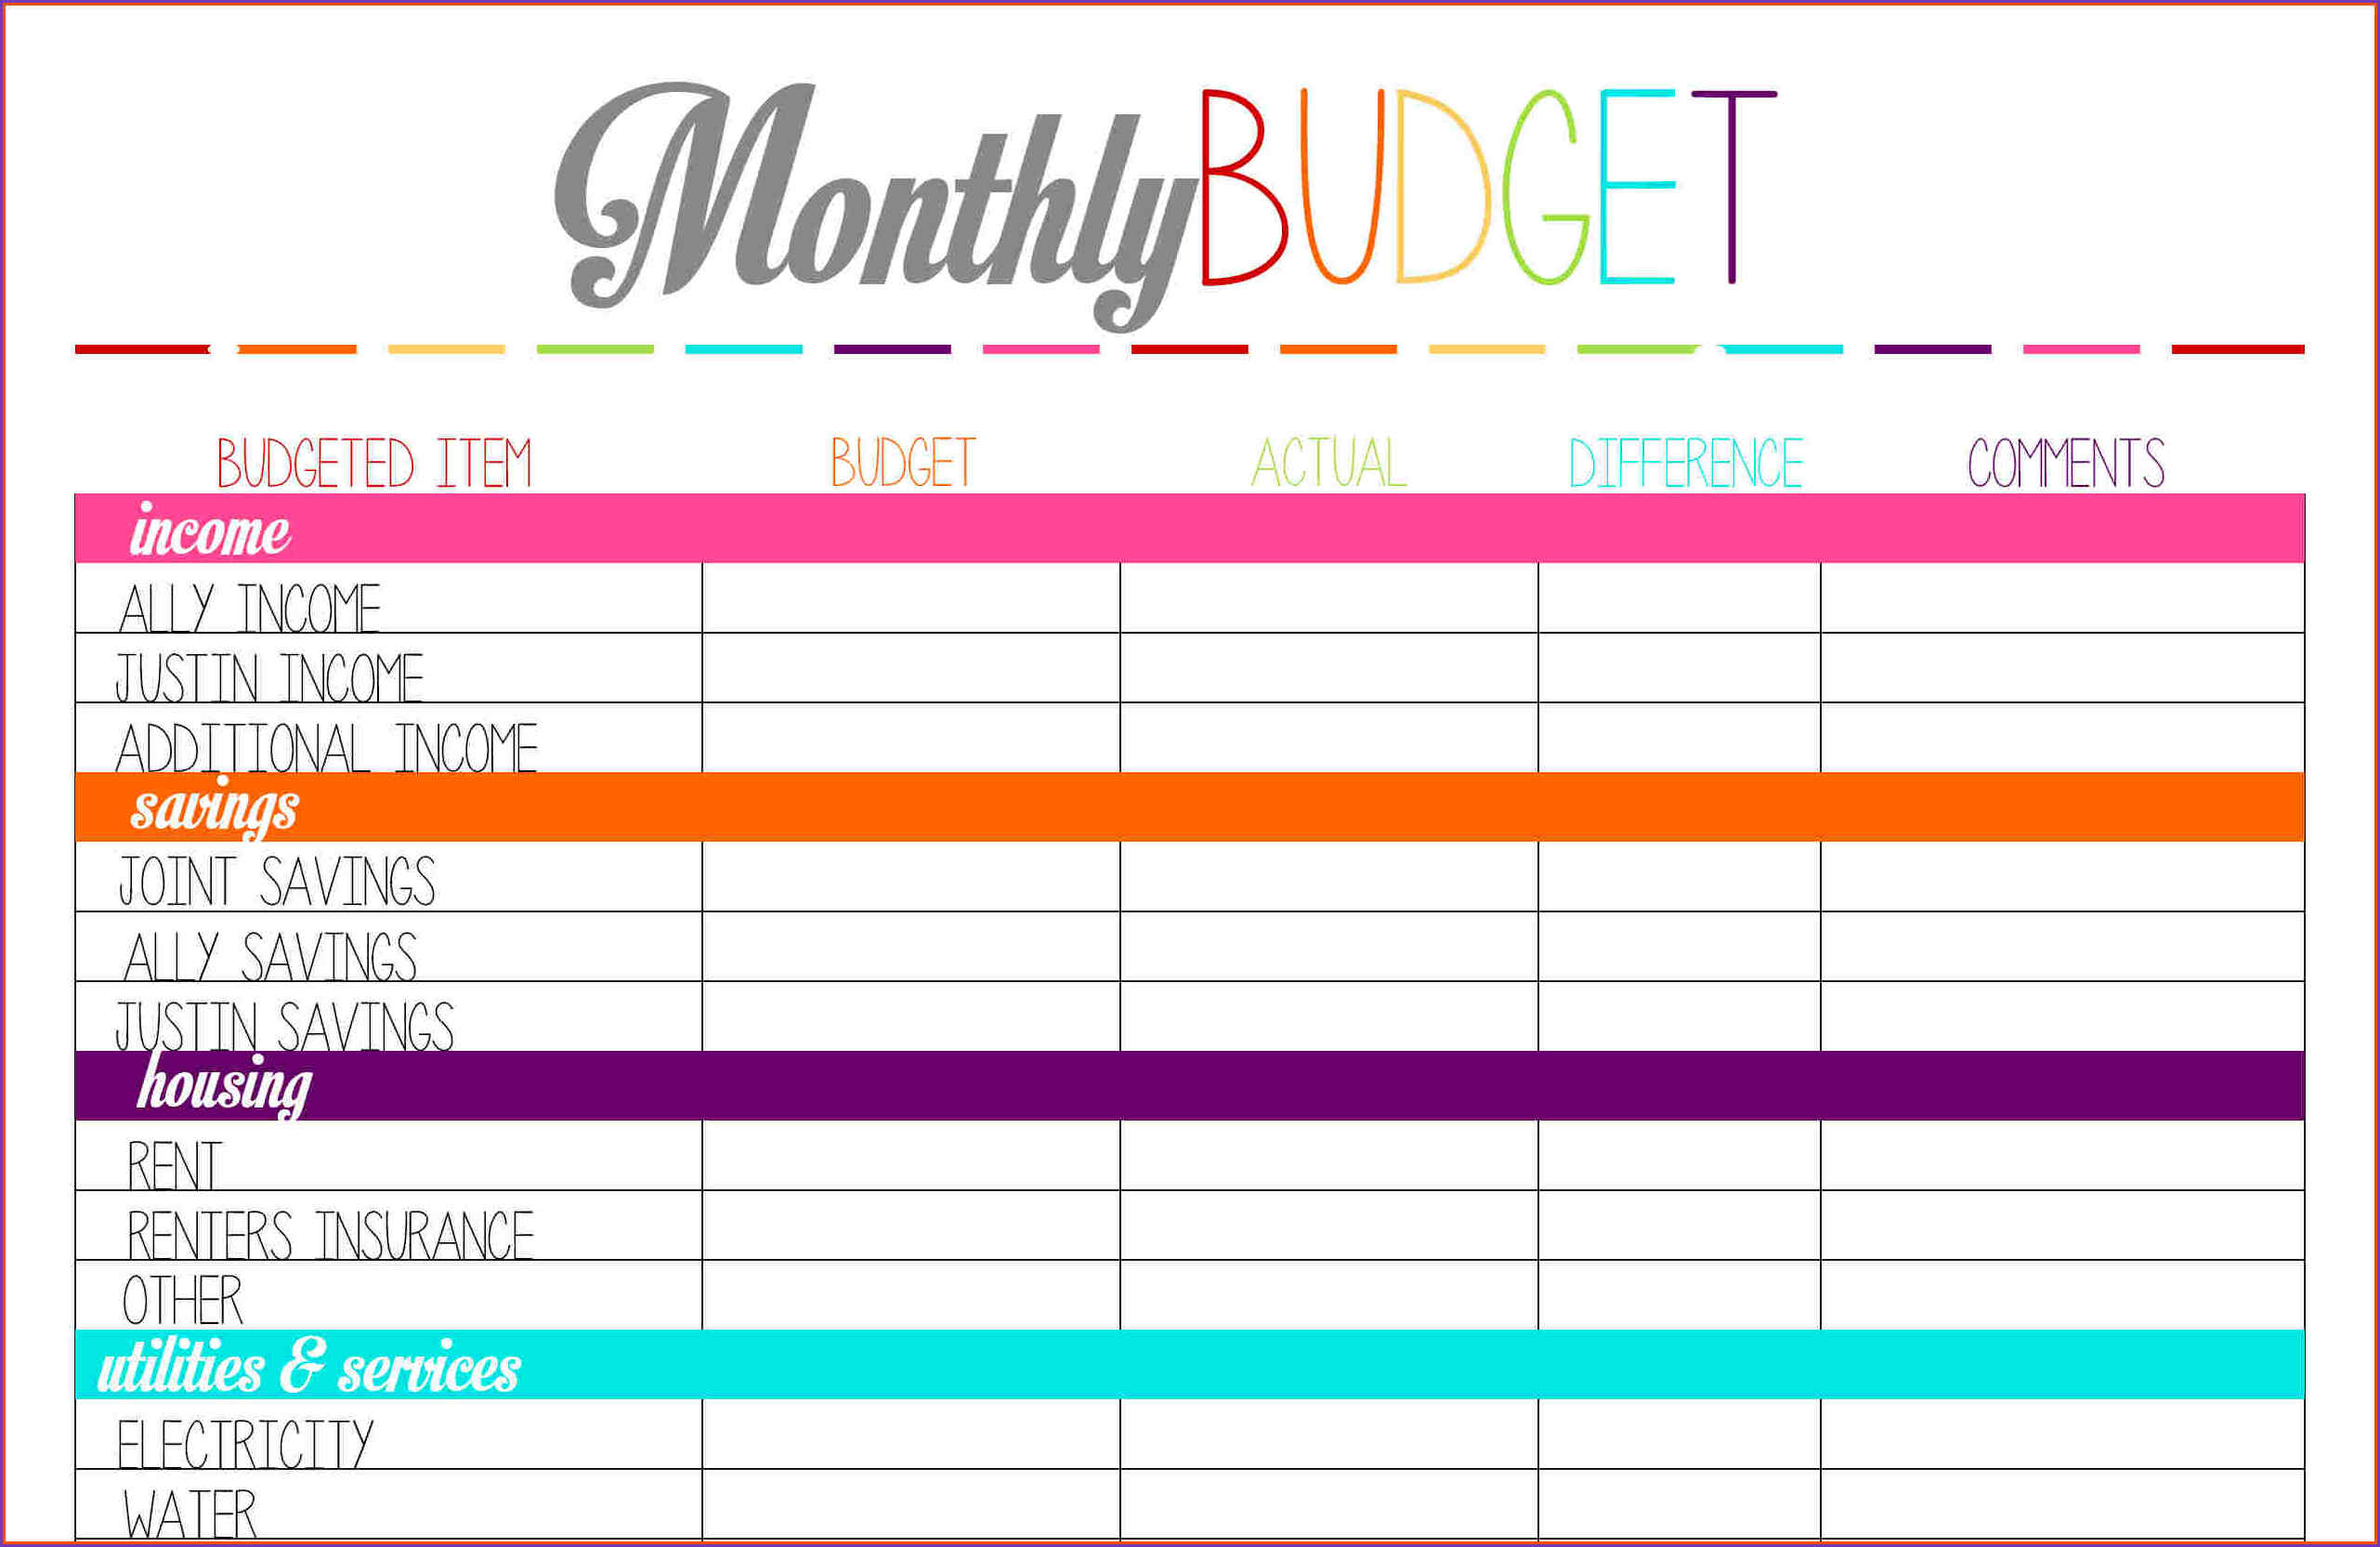 001 Home Budget Spreadsheet Free Monthly Planner - Free Printable Home Budget Planner